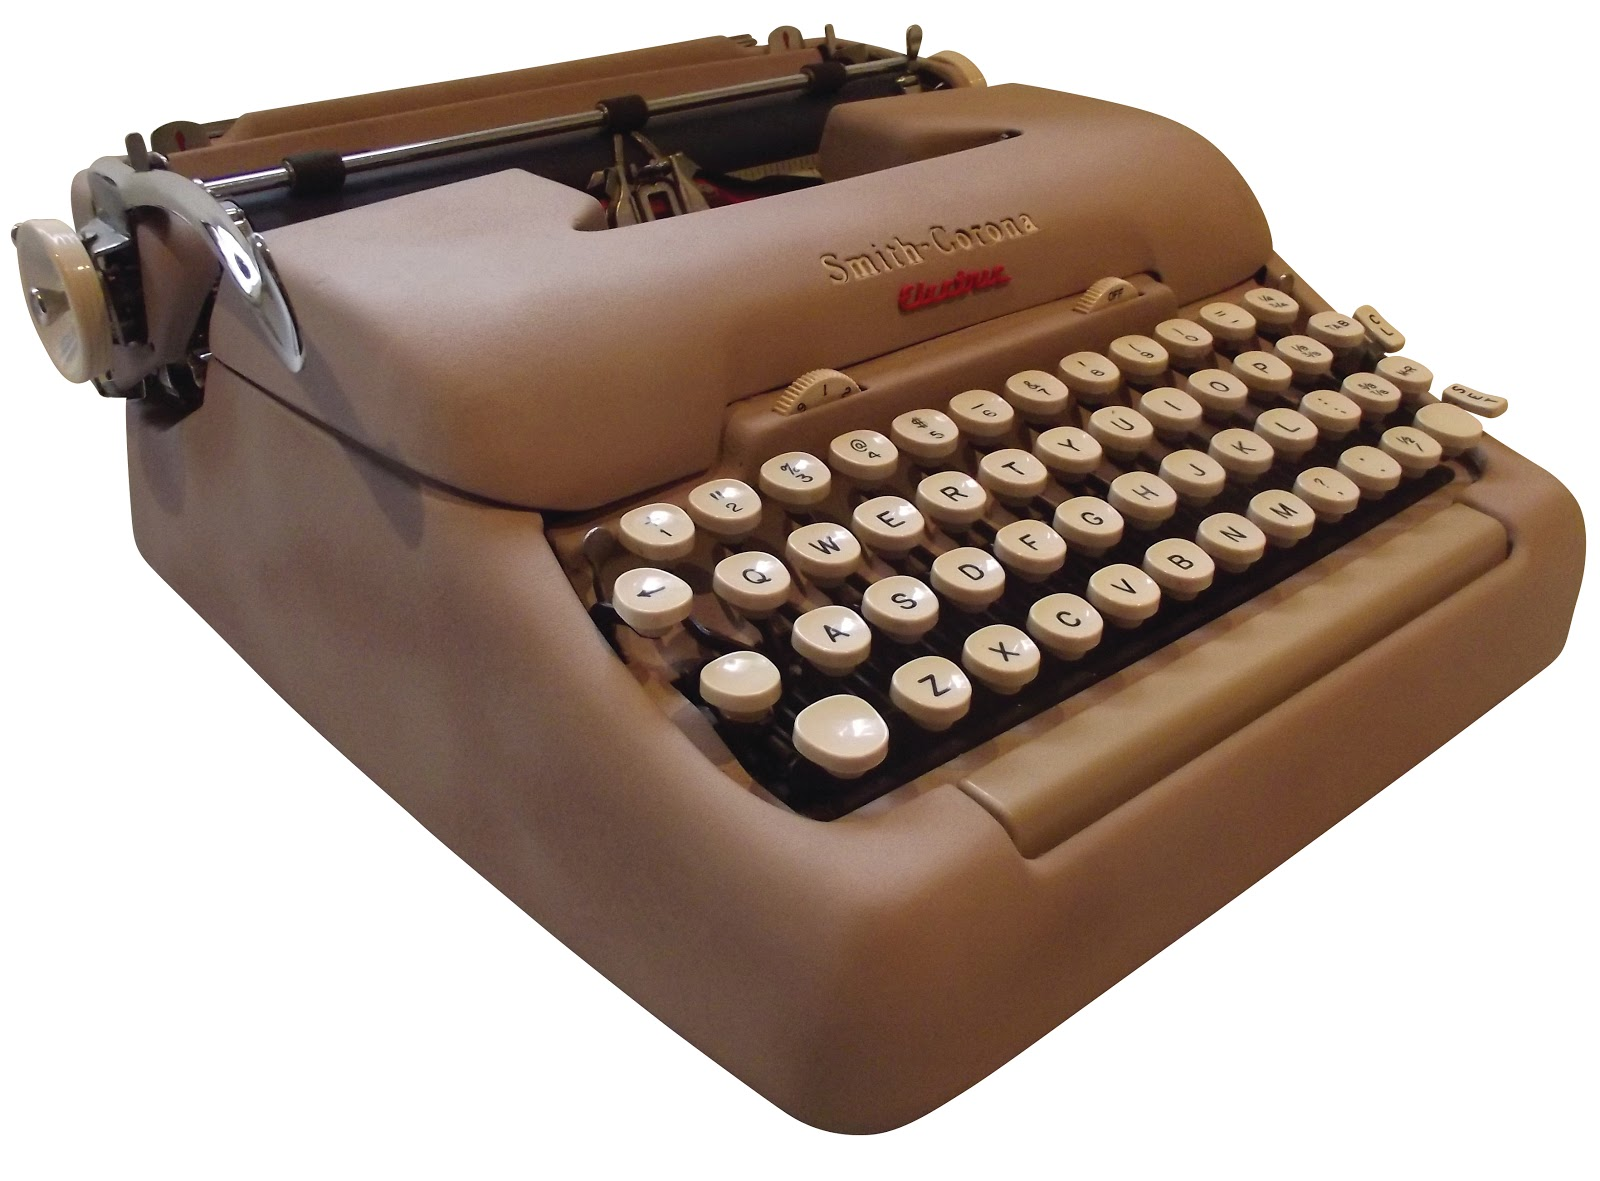 Who invented the typewriter